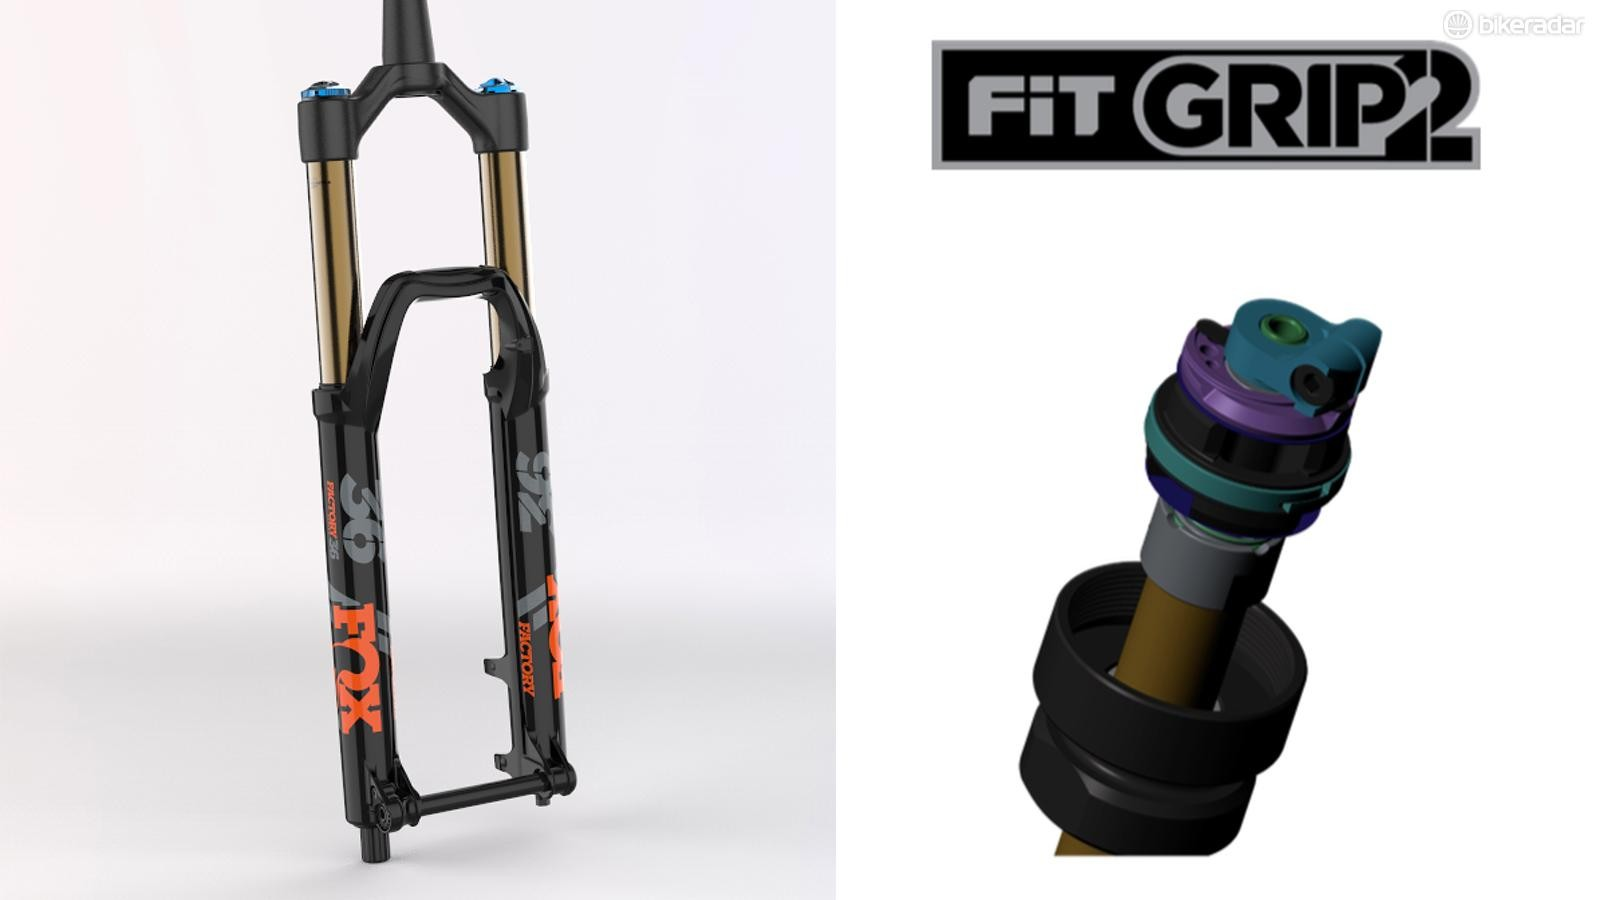 Fox has replaced the RC2 damper with the GRIP2